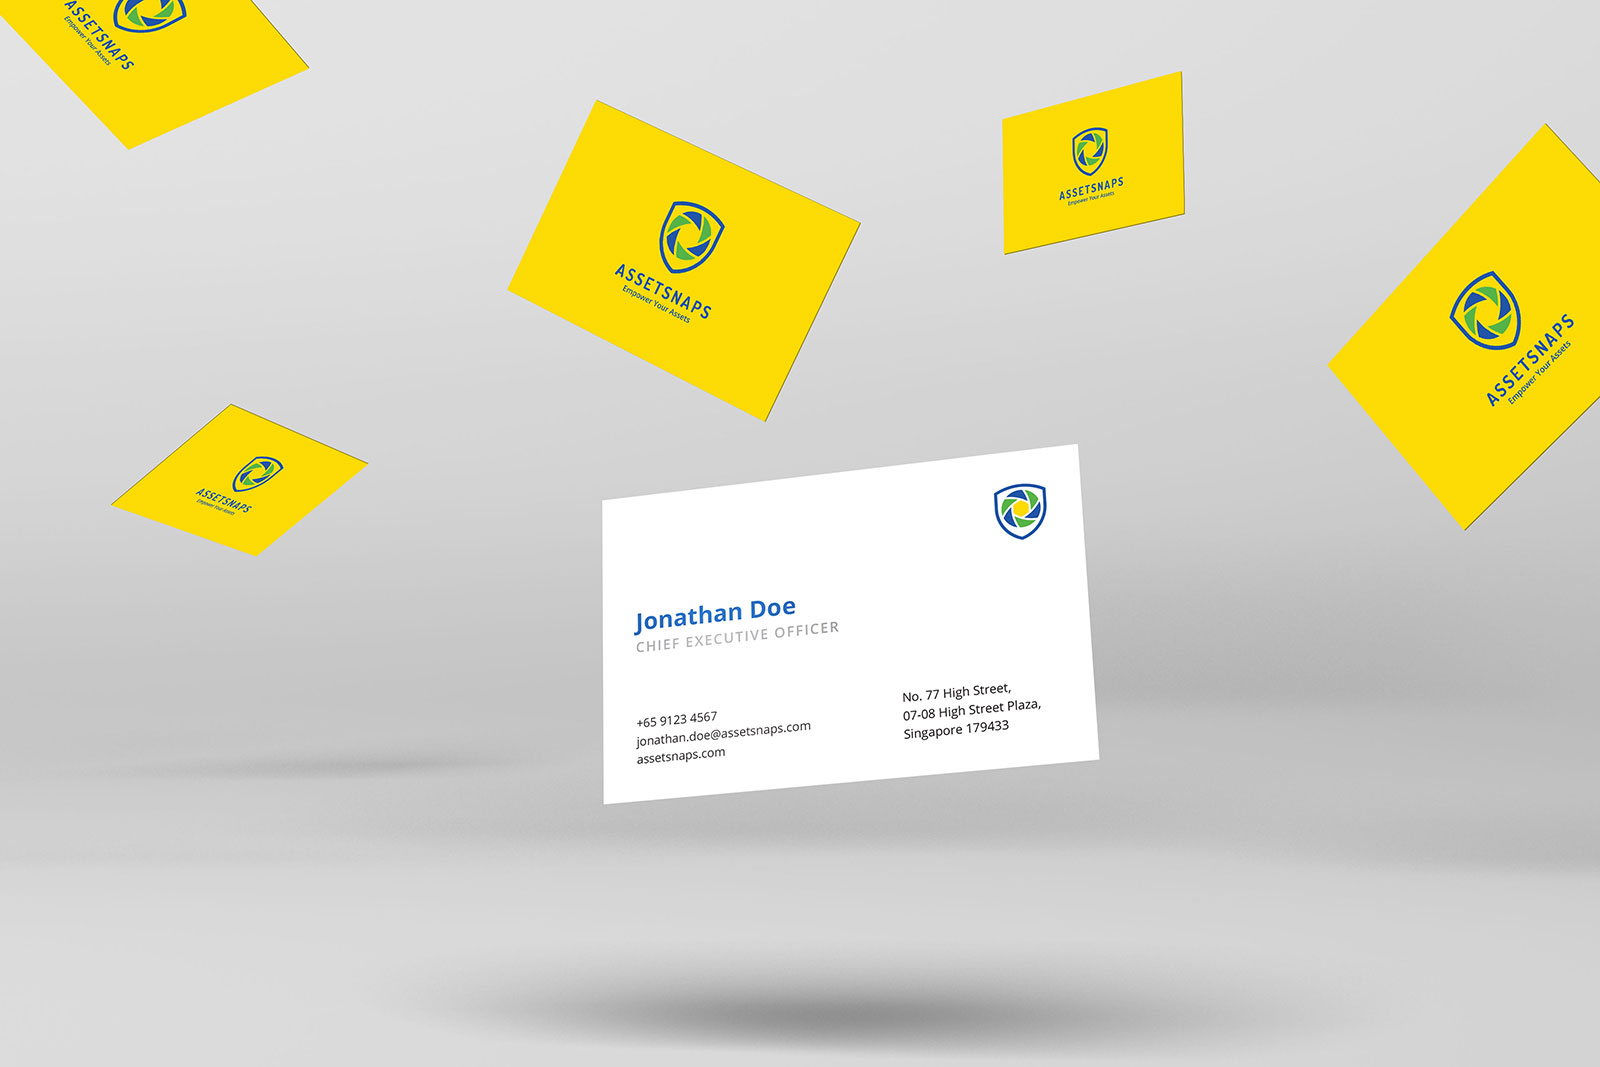 Asset Snaps - Business Card Perspective 2